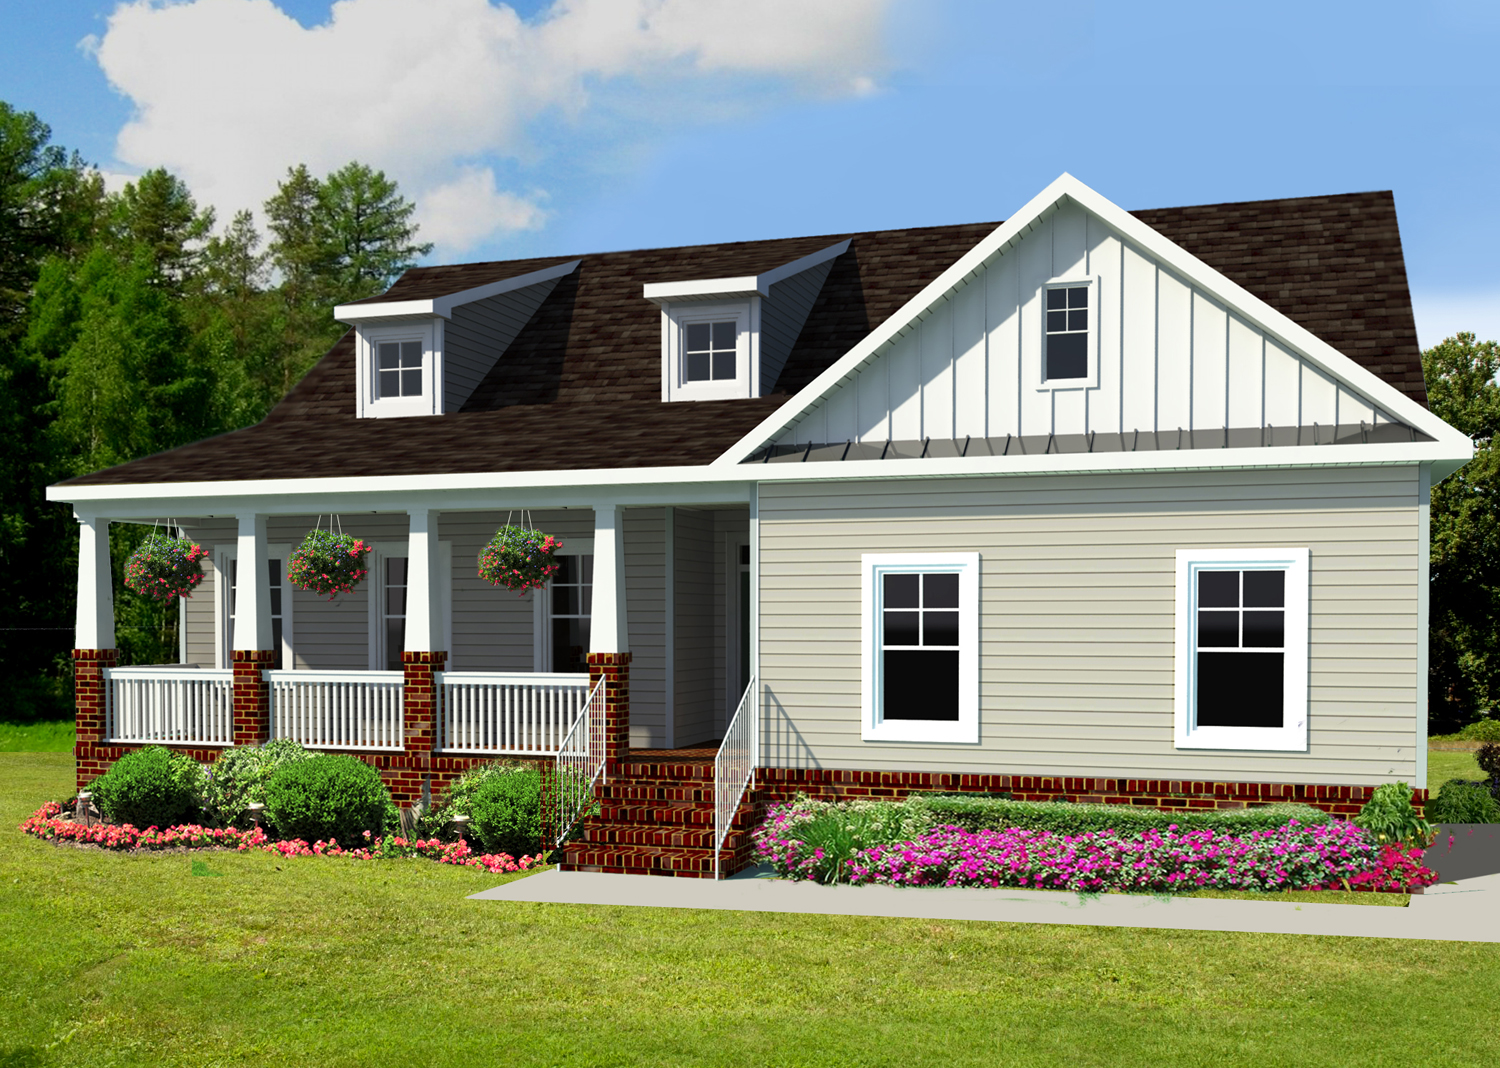 Artist rendering of AB Homes' Somerton III with front porch